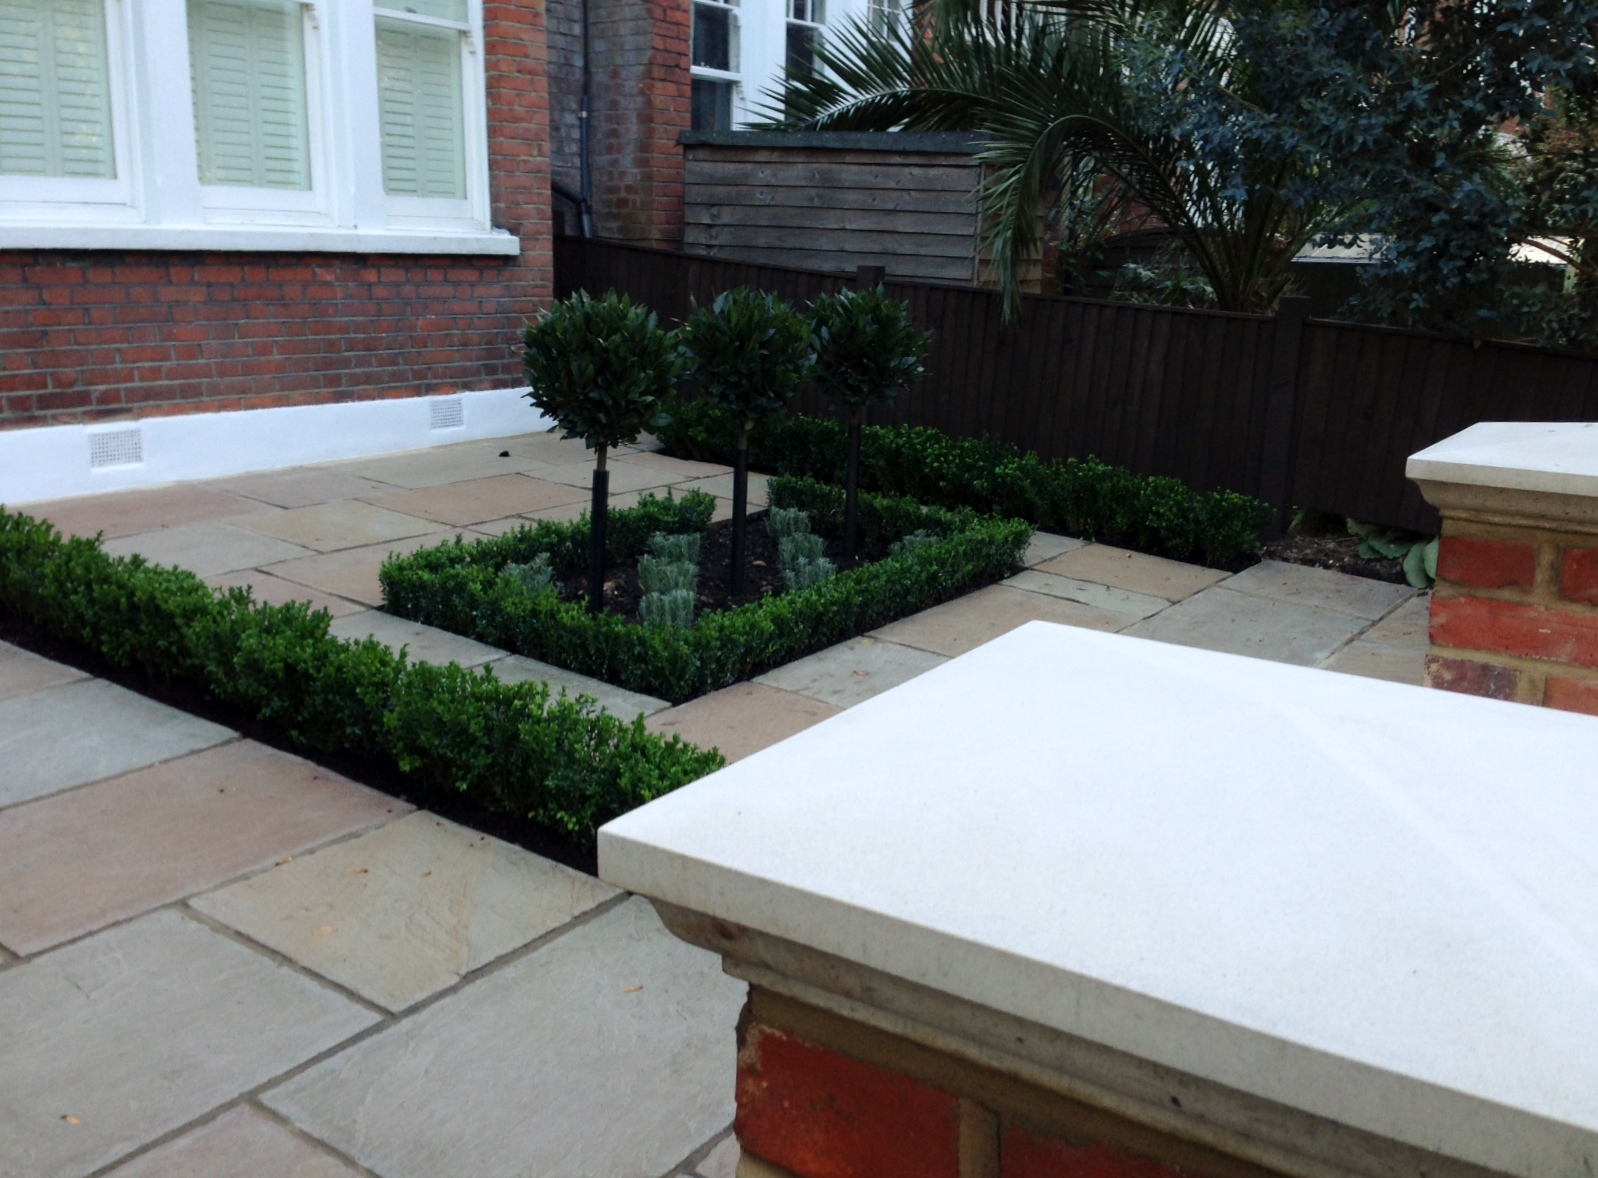 Imperial red brick London wall stone  pier caps sandstone paving and formal topiary classic front garden Balham (7)